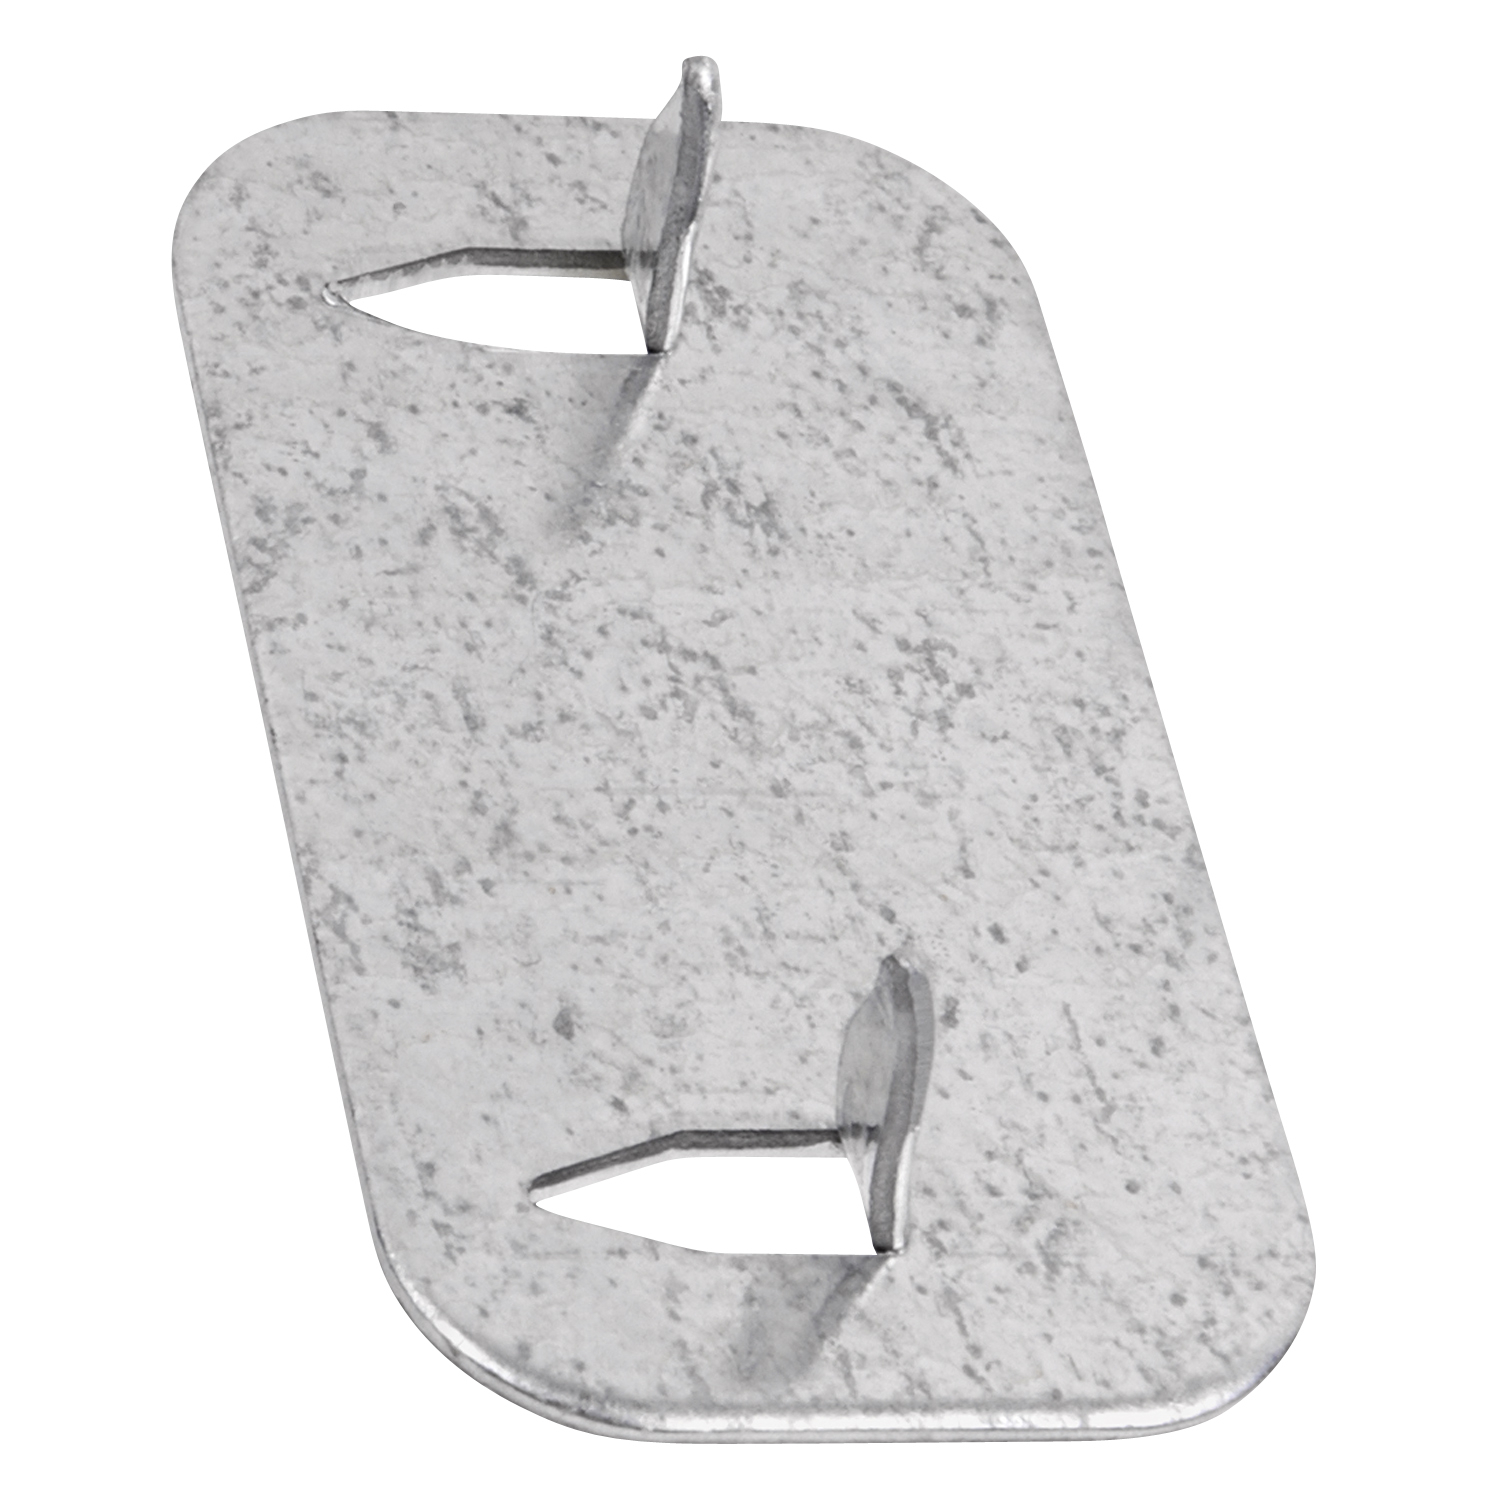 STEEL-CITY CP1 CABLE PROTECTOR PLATE